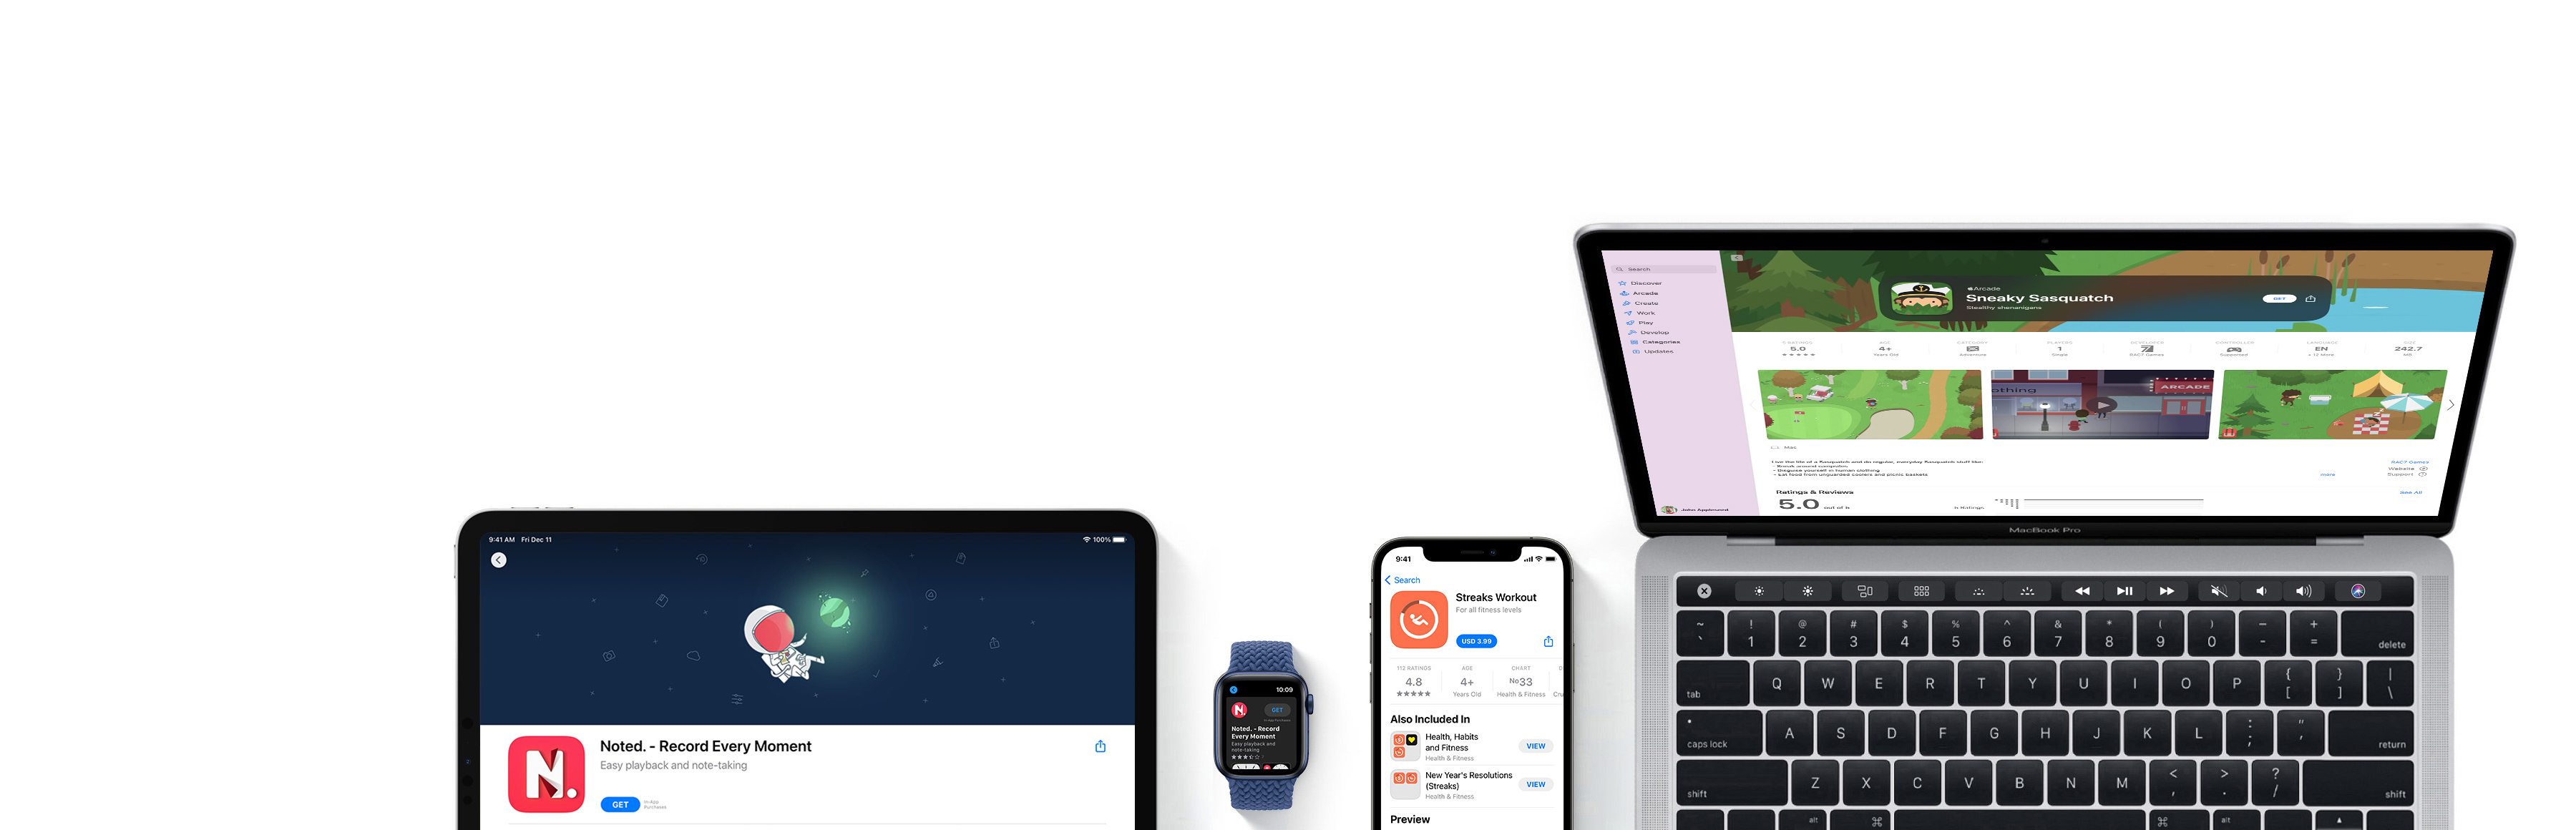 App Store - Official Apple Support